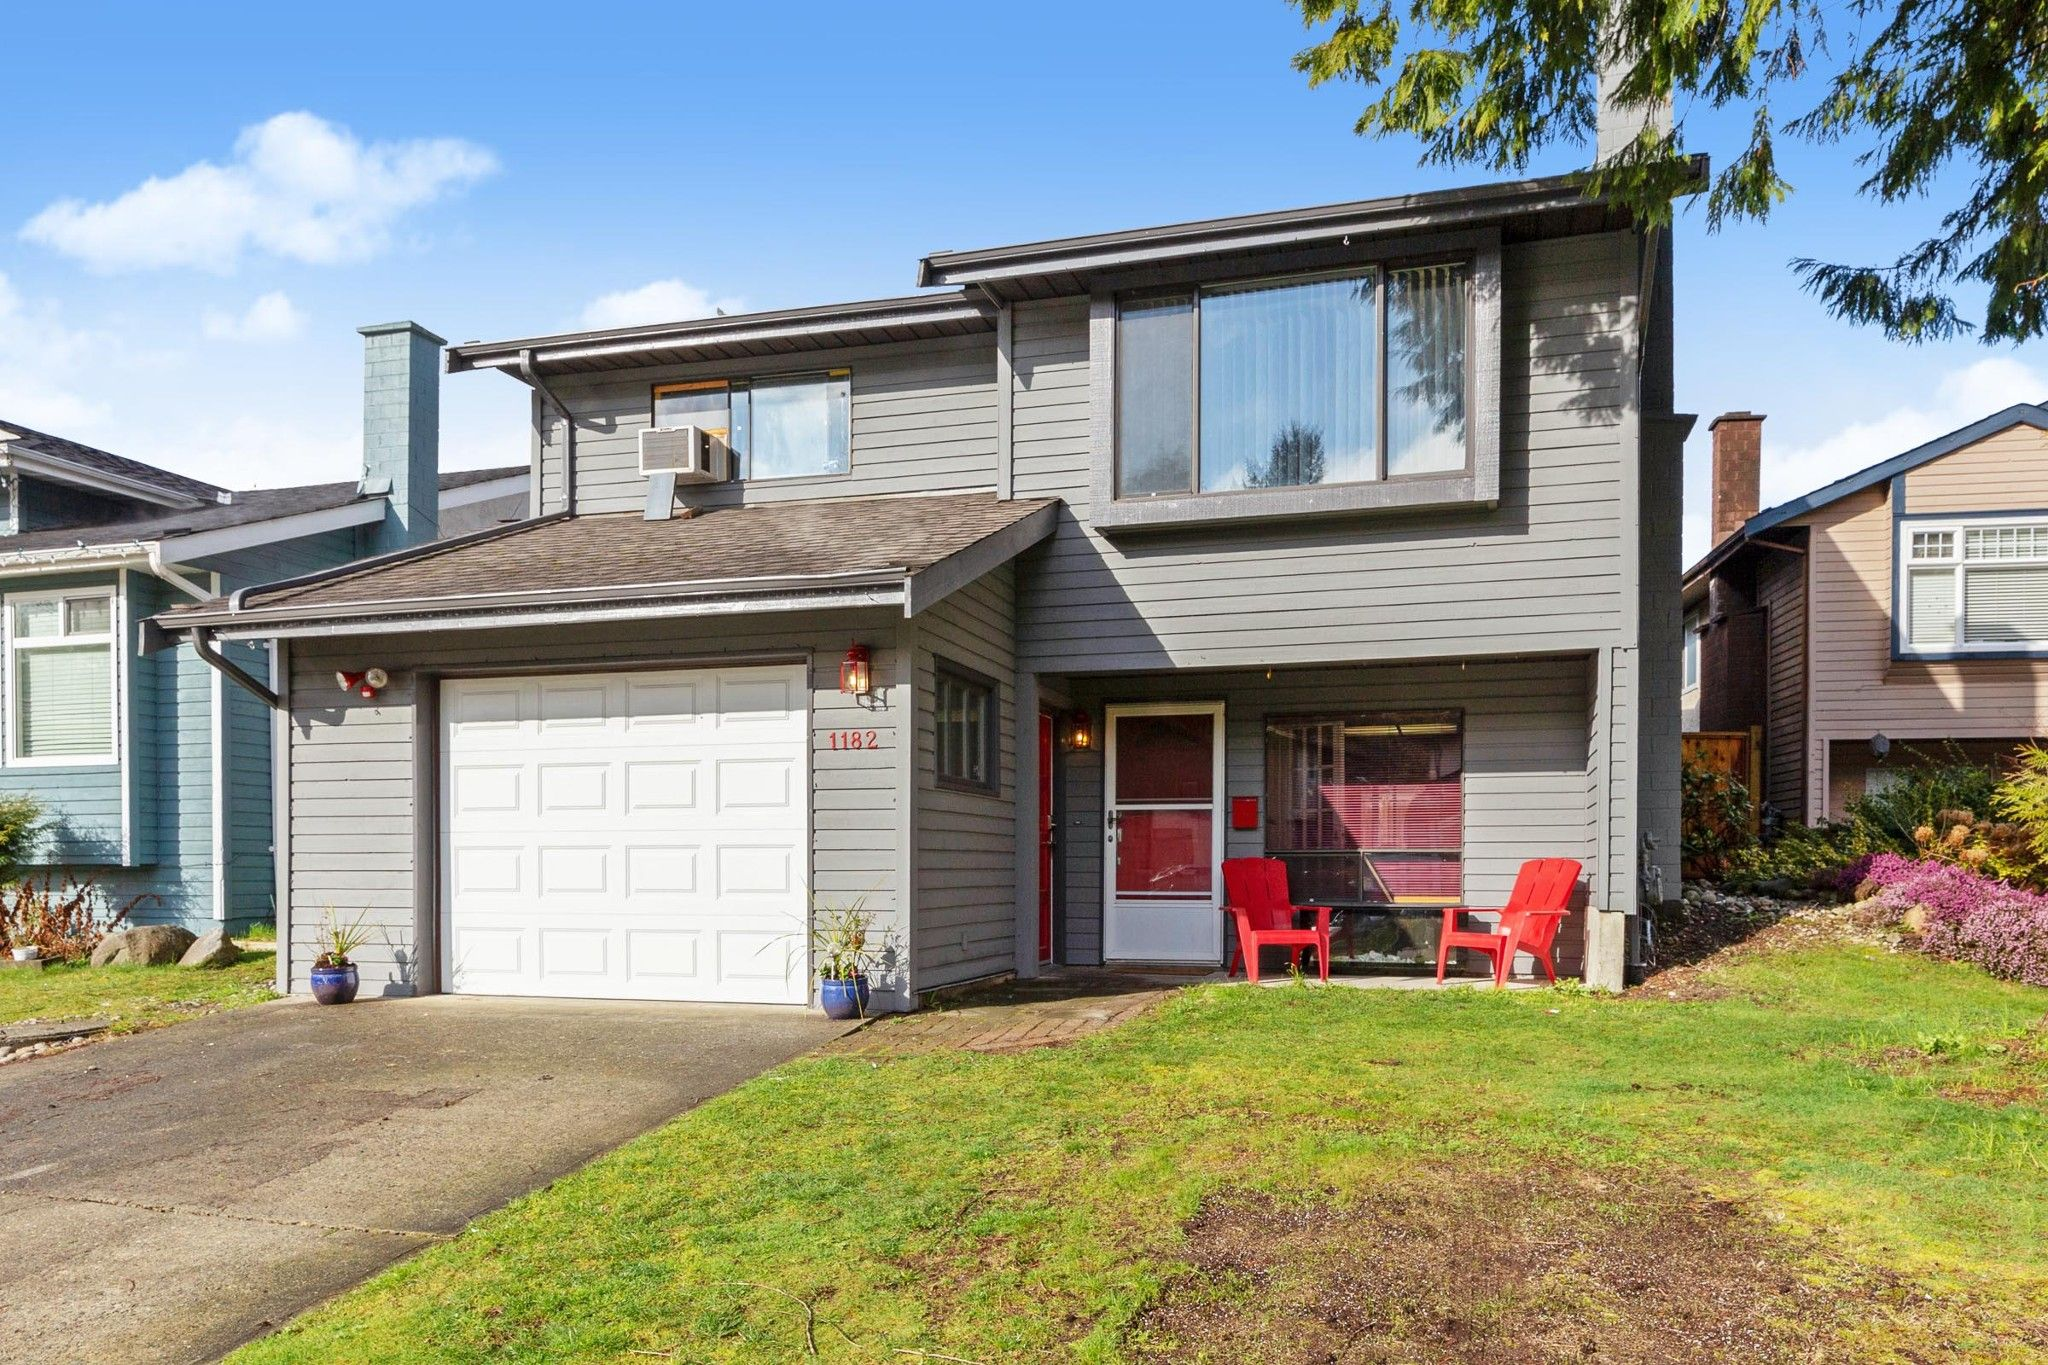 """Main Photo: 1182 ESPERANZA Drive in Coquitlam: New Horizons House for sale in """"NEW HORIZONS"""" : MLS®# R2555181"""